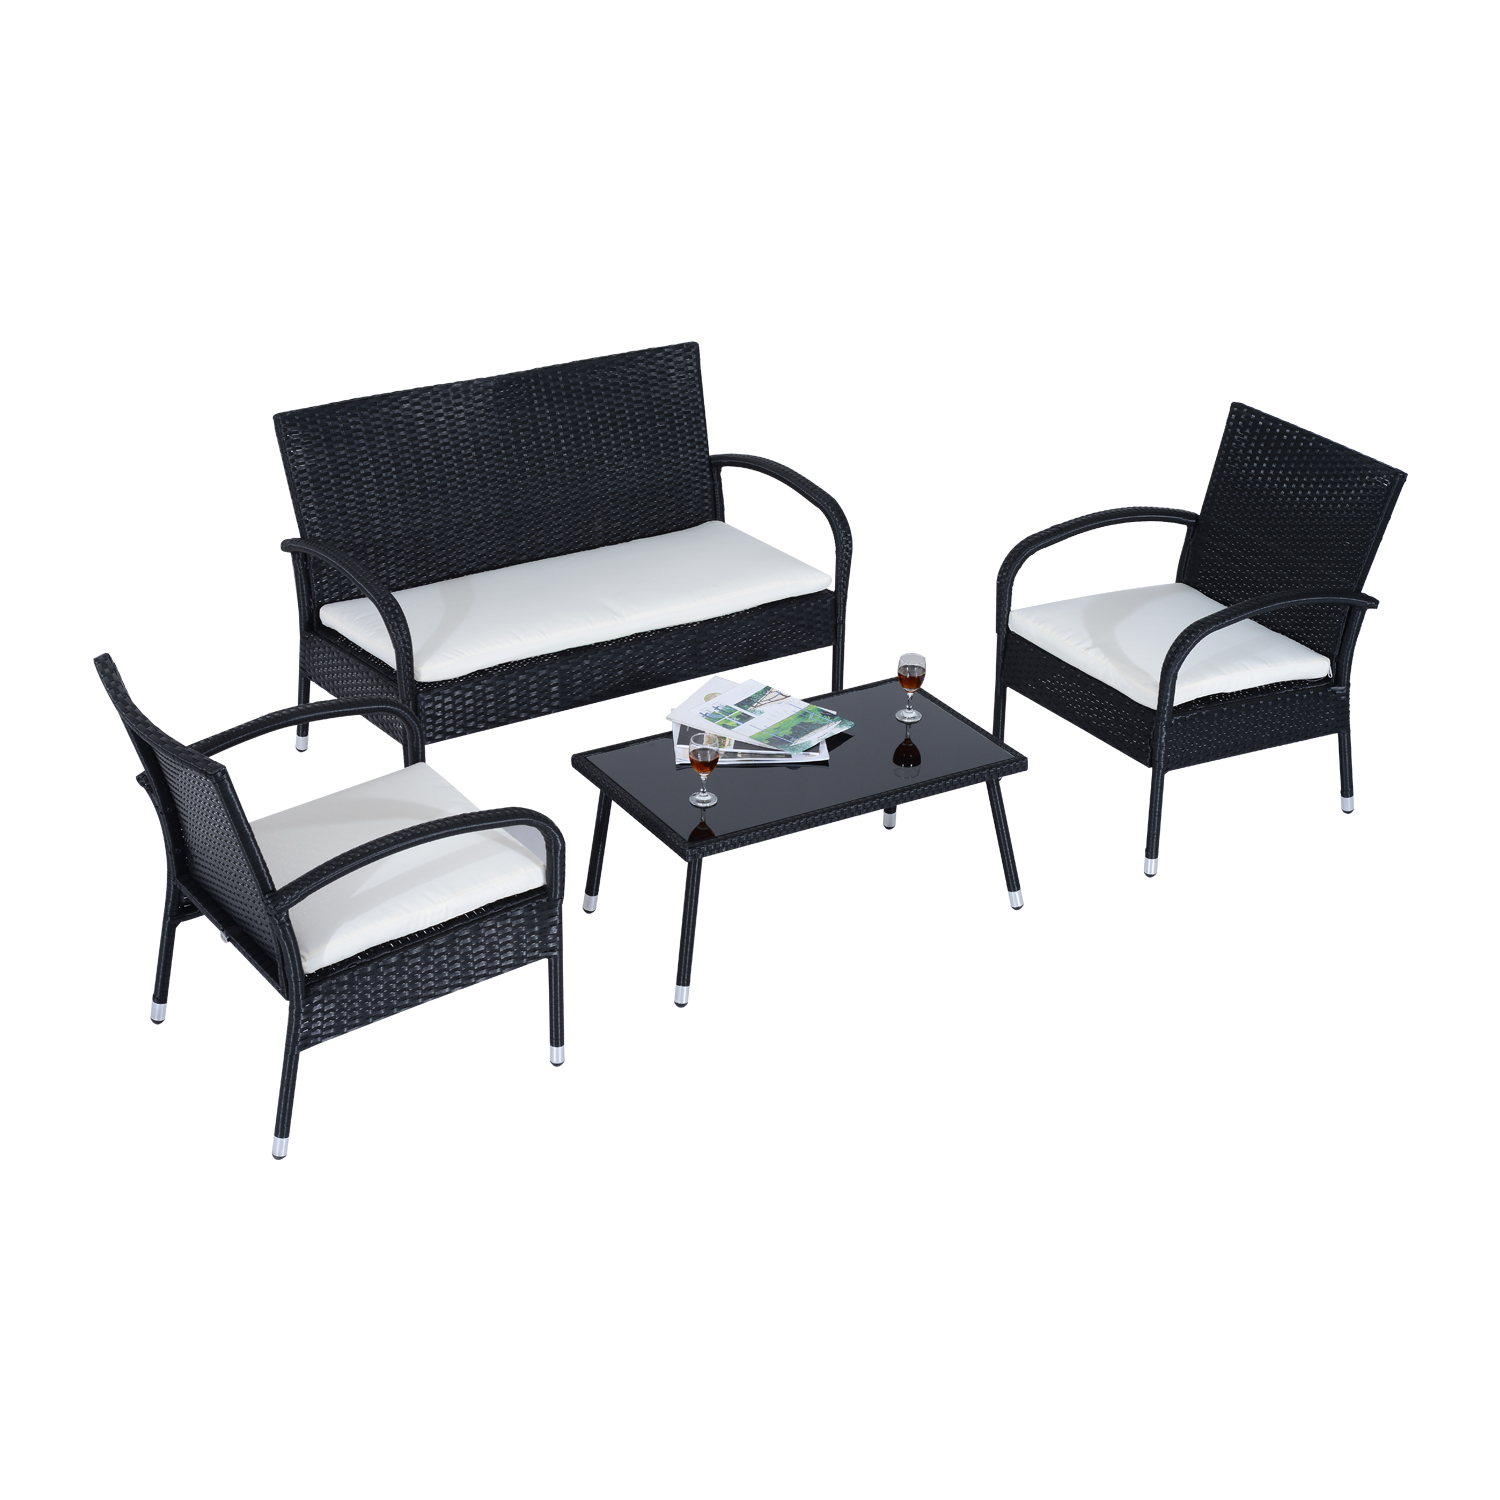 Outsunny Sofa, 2 Chairs And Table With Pillows Cream